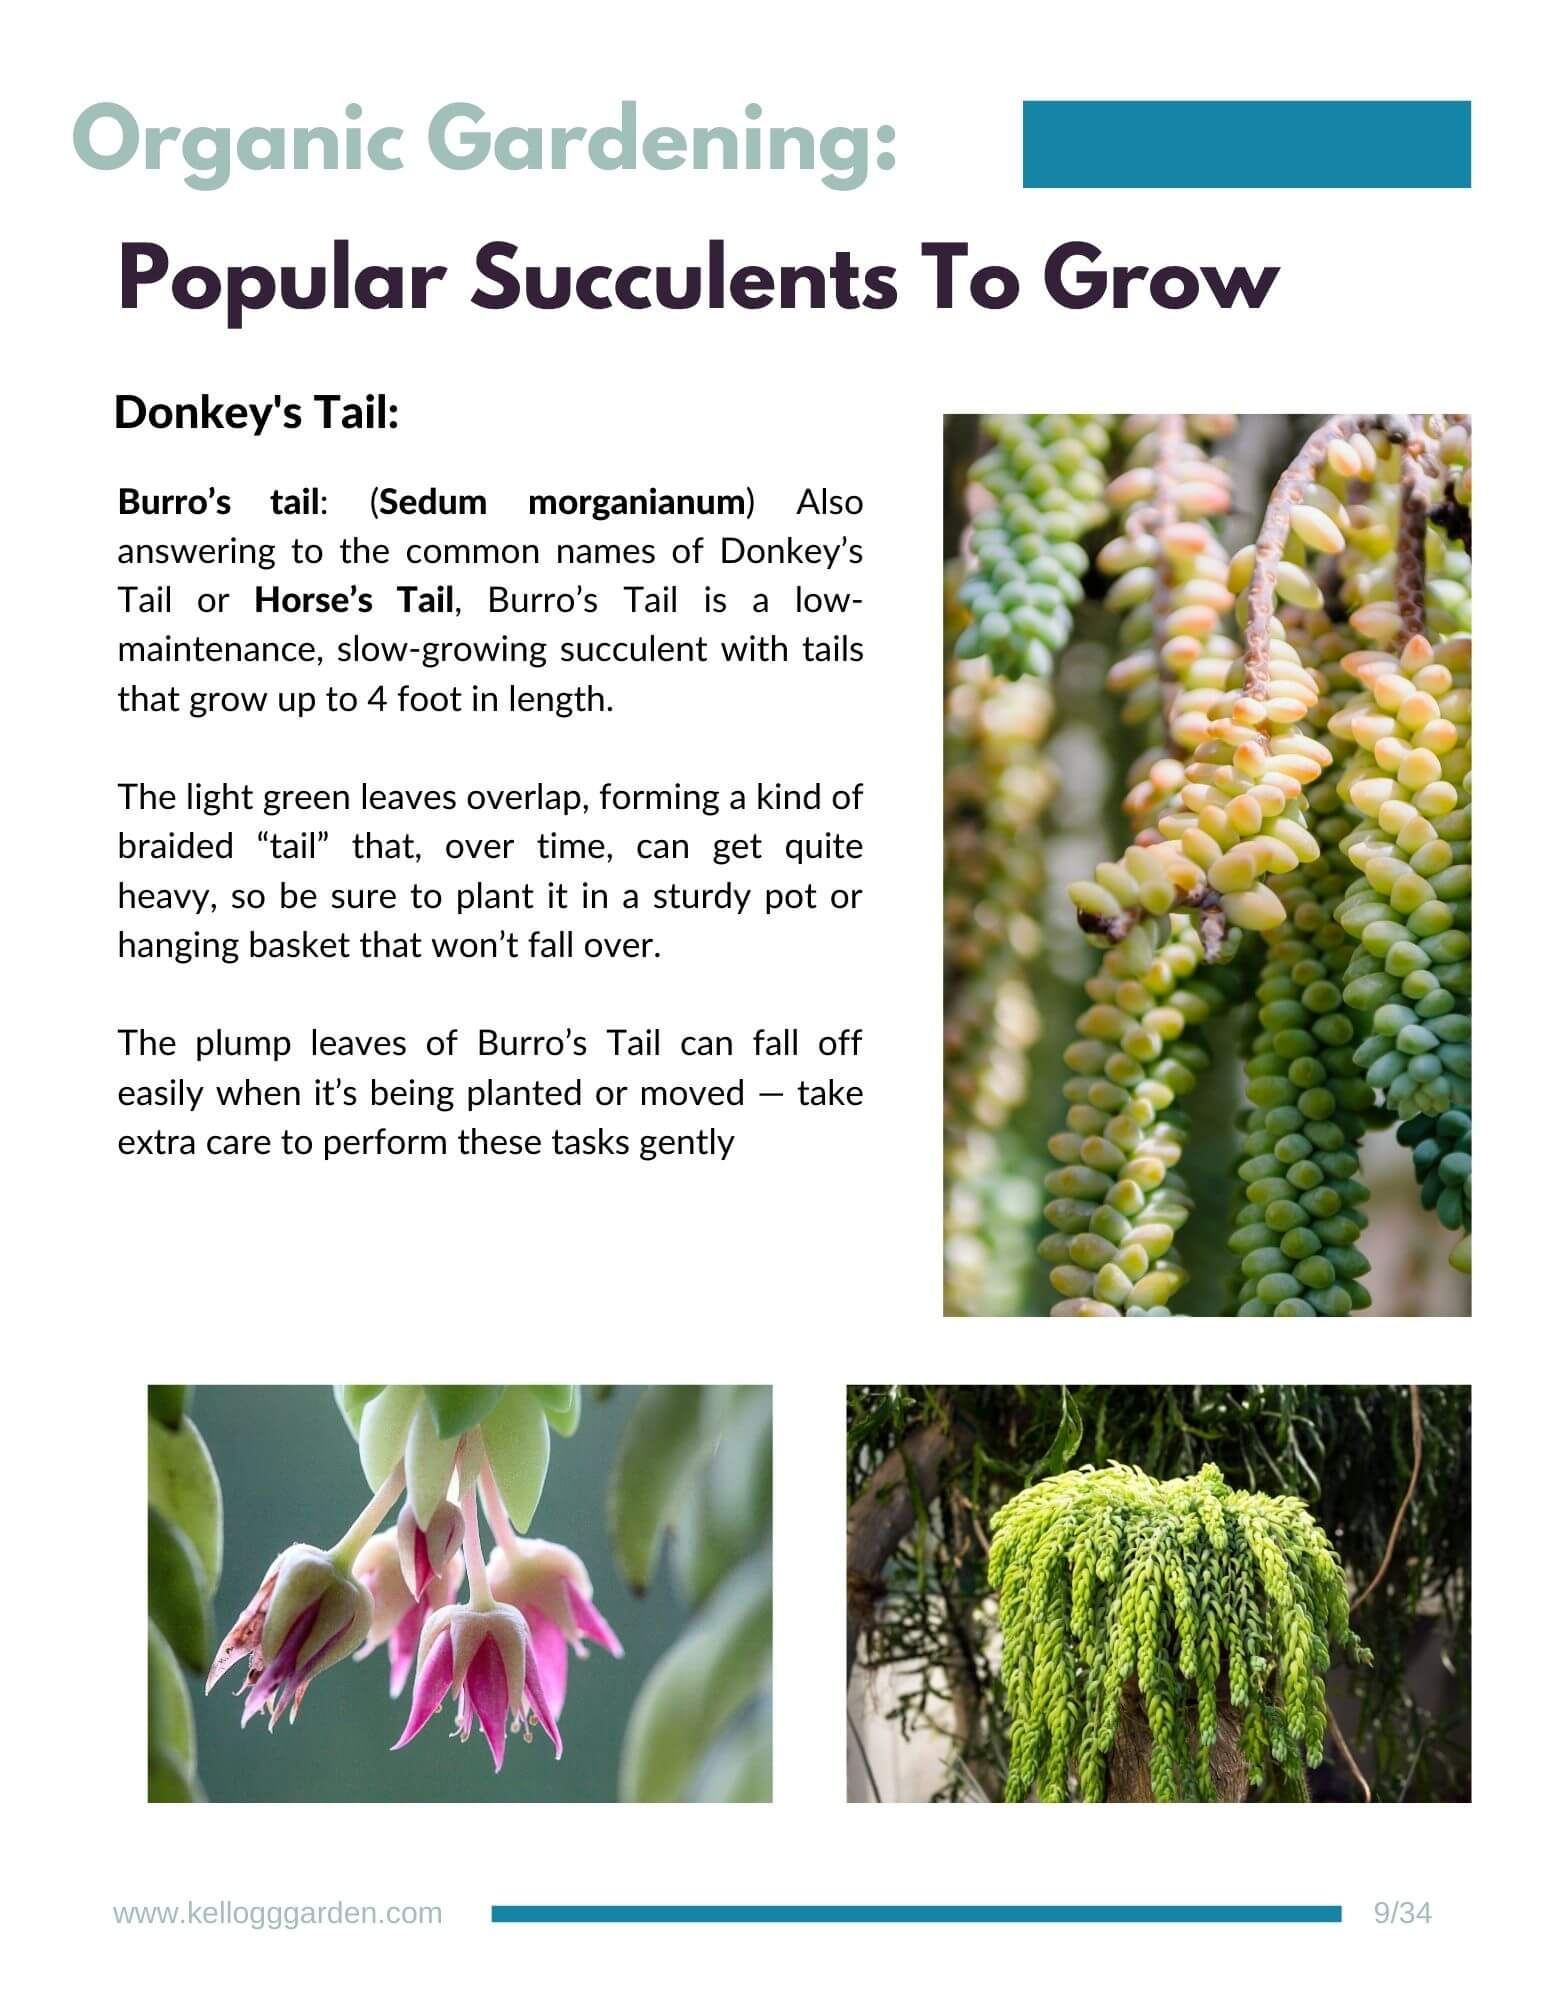 donkey's tail succulent growing and in bloom